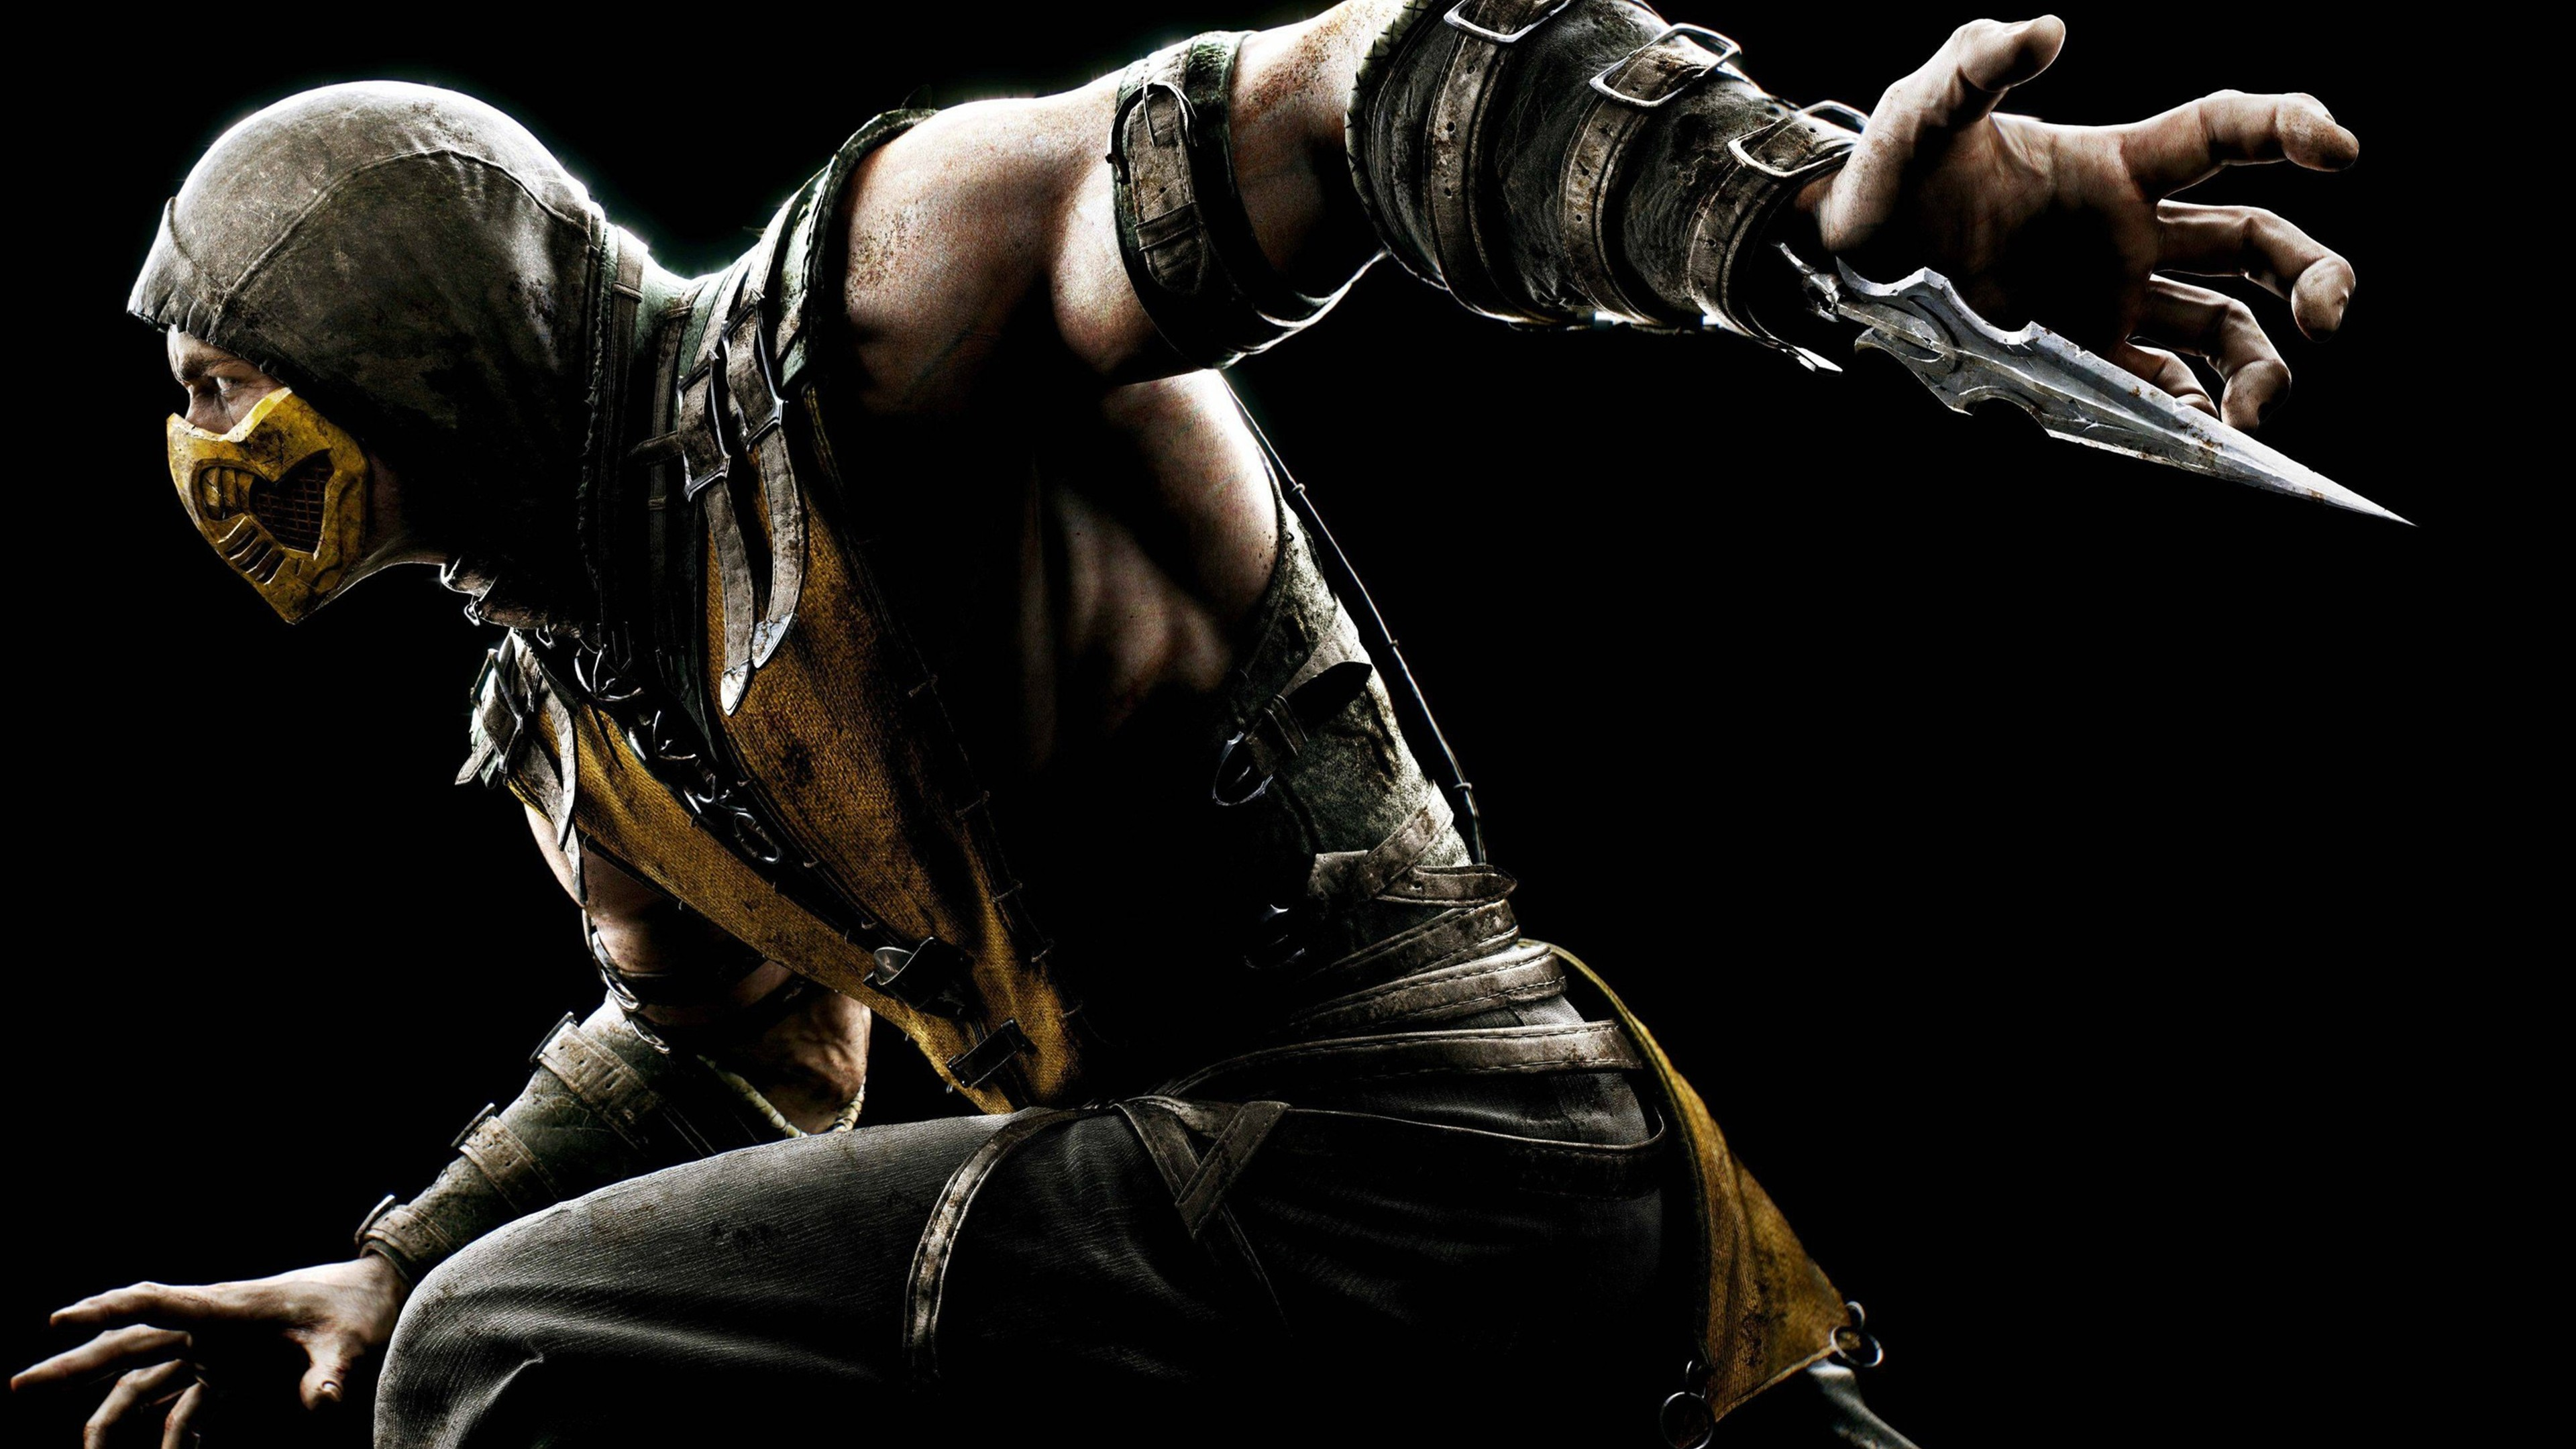 Mortal kombat x scorpion hd games 4k wallpapers images - Mortal kombat scorpion wallpaper ...